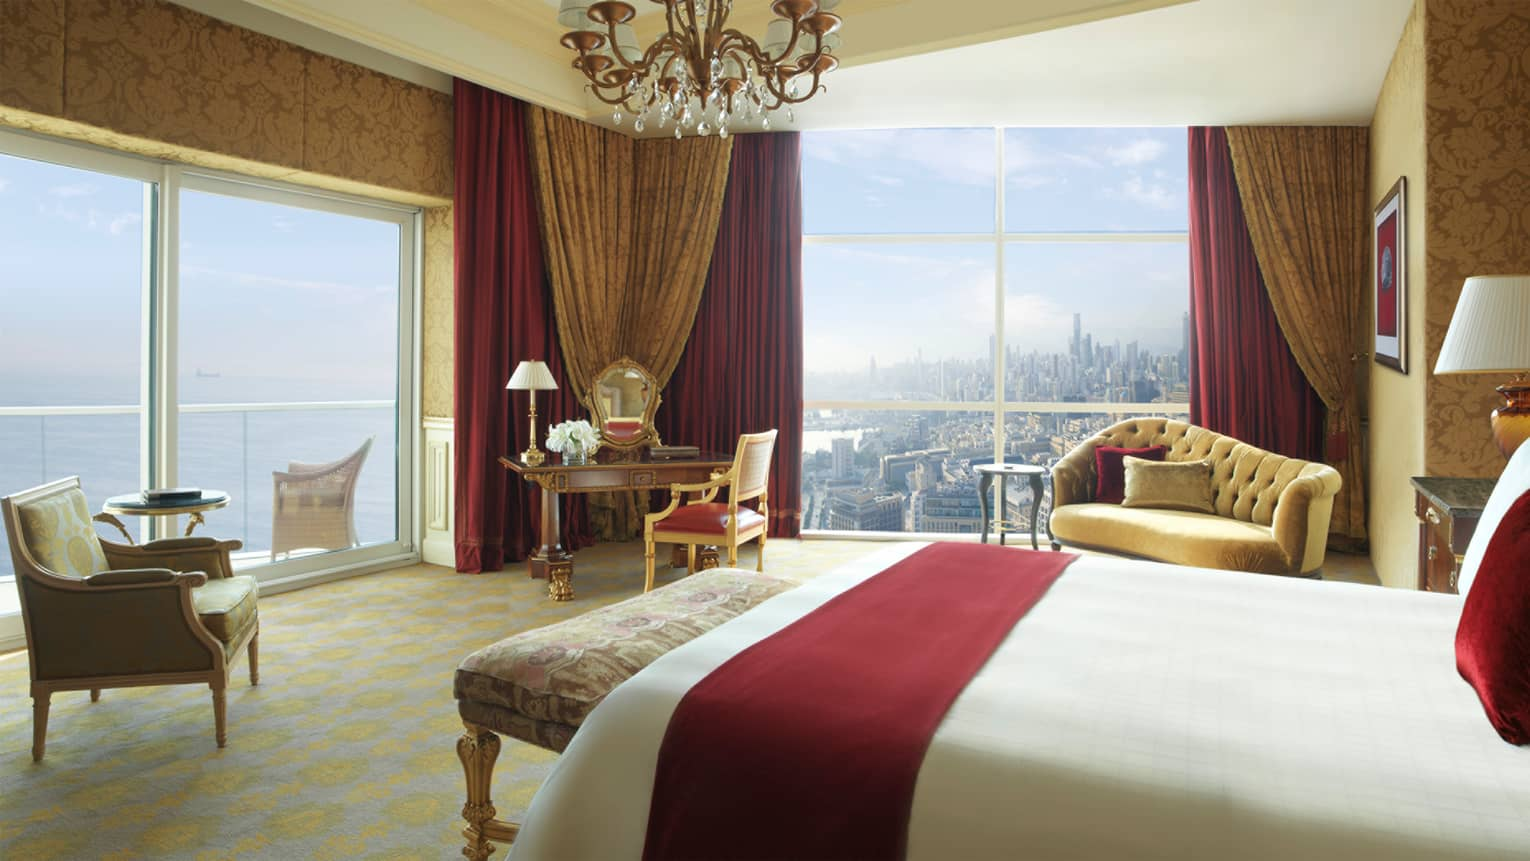 Royal Suite hotel room with red velvet pillow and blanket, chandelier with crystals, red-and-gold accent chairs